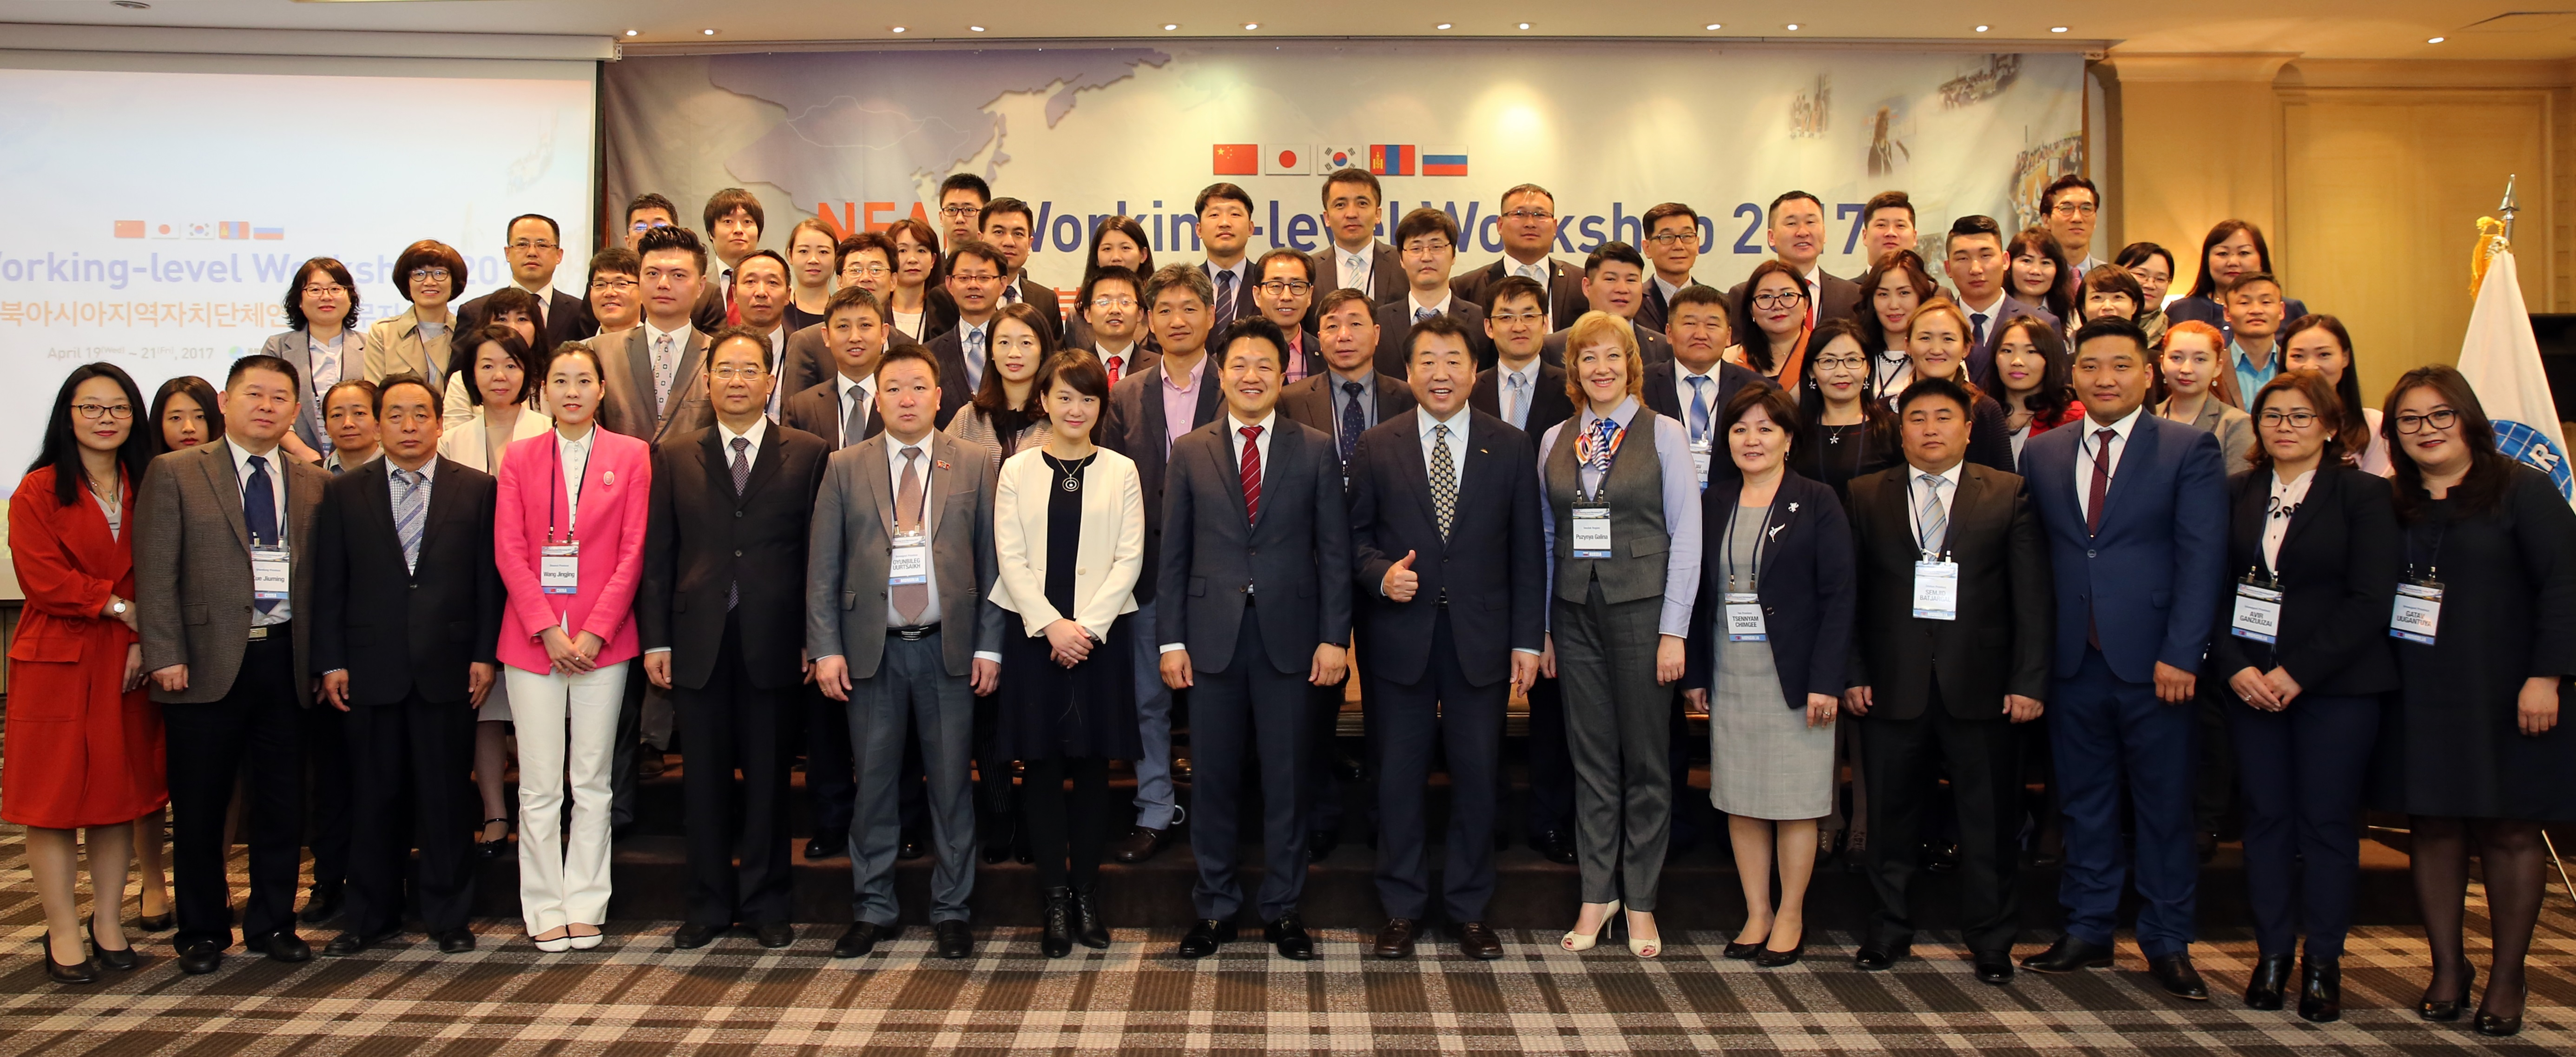 NEAR Working-level Workshop 2017, held in Jeju Province, South Korea